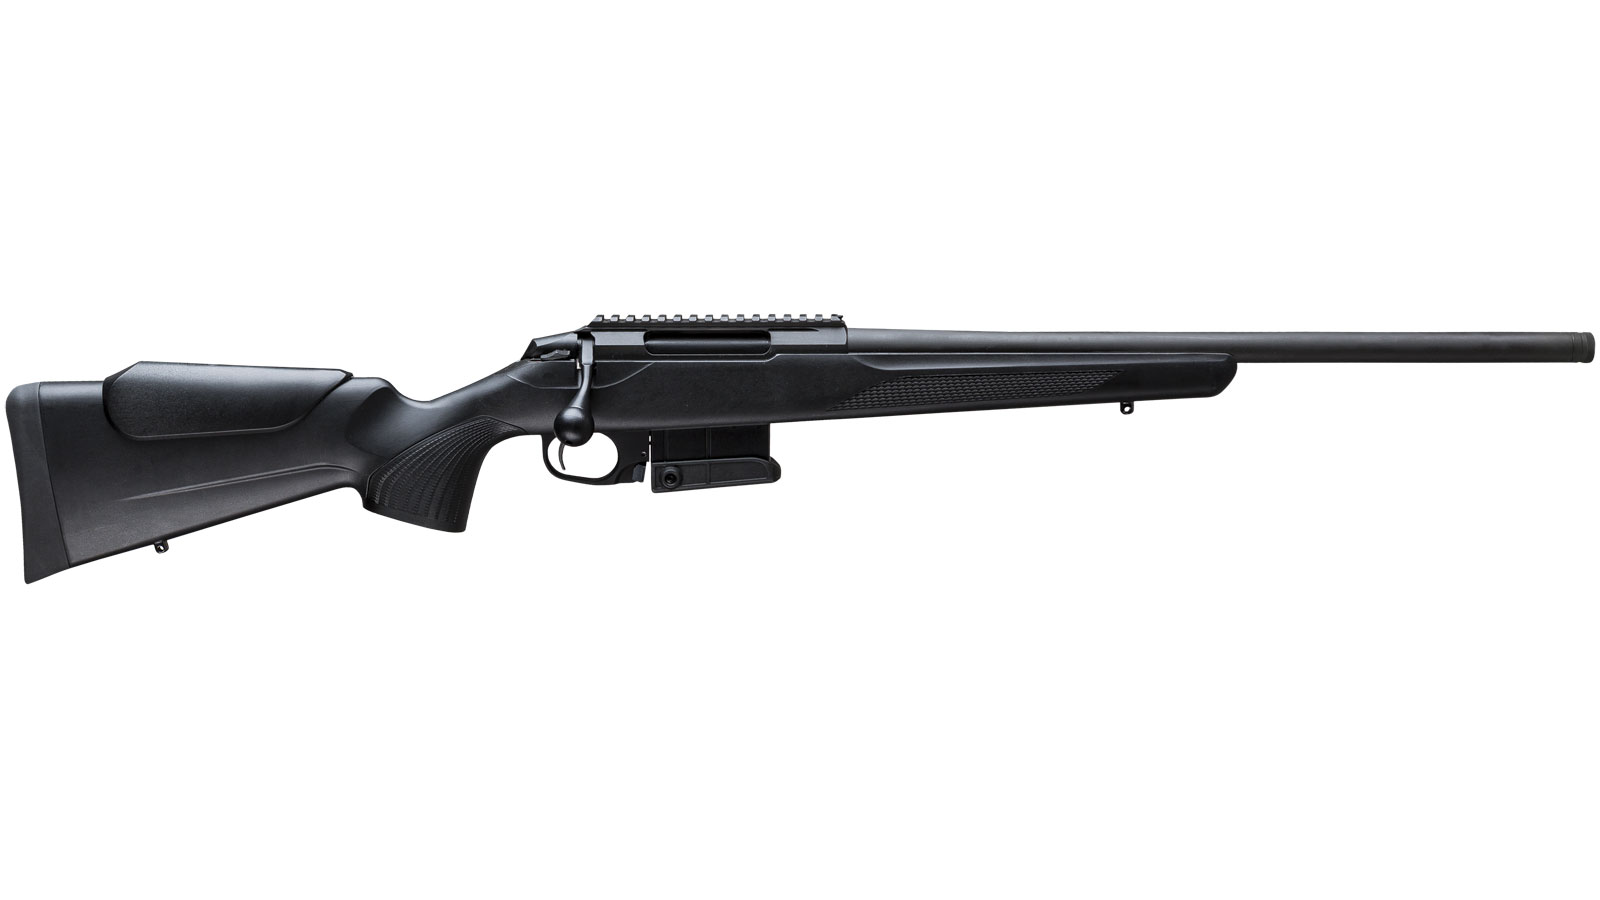 Tikka T3 JRTC382CA T3x Compact Tactical Rifle Bolt 6.5 Creedmoor 24 TB 10+1 Synthetic Black Stk Blued in.